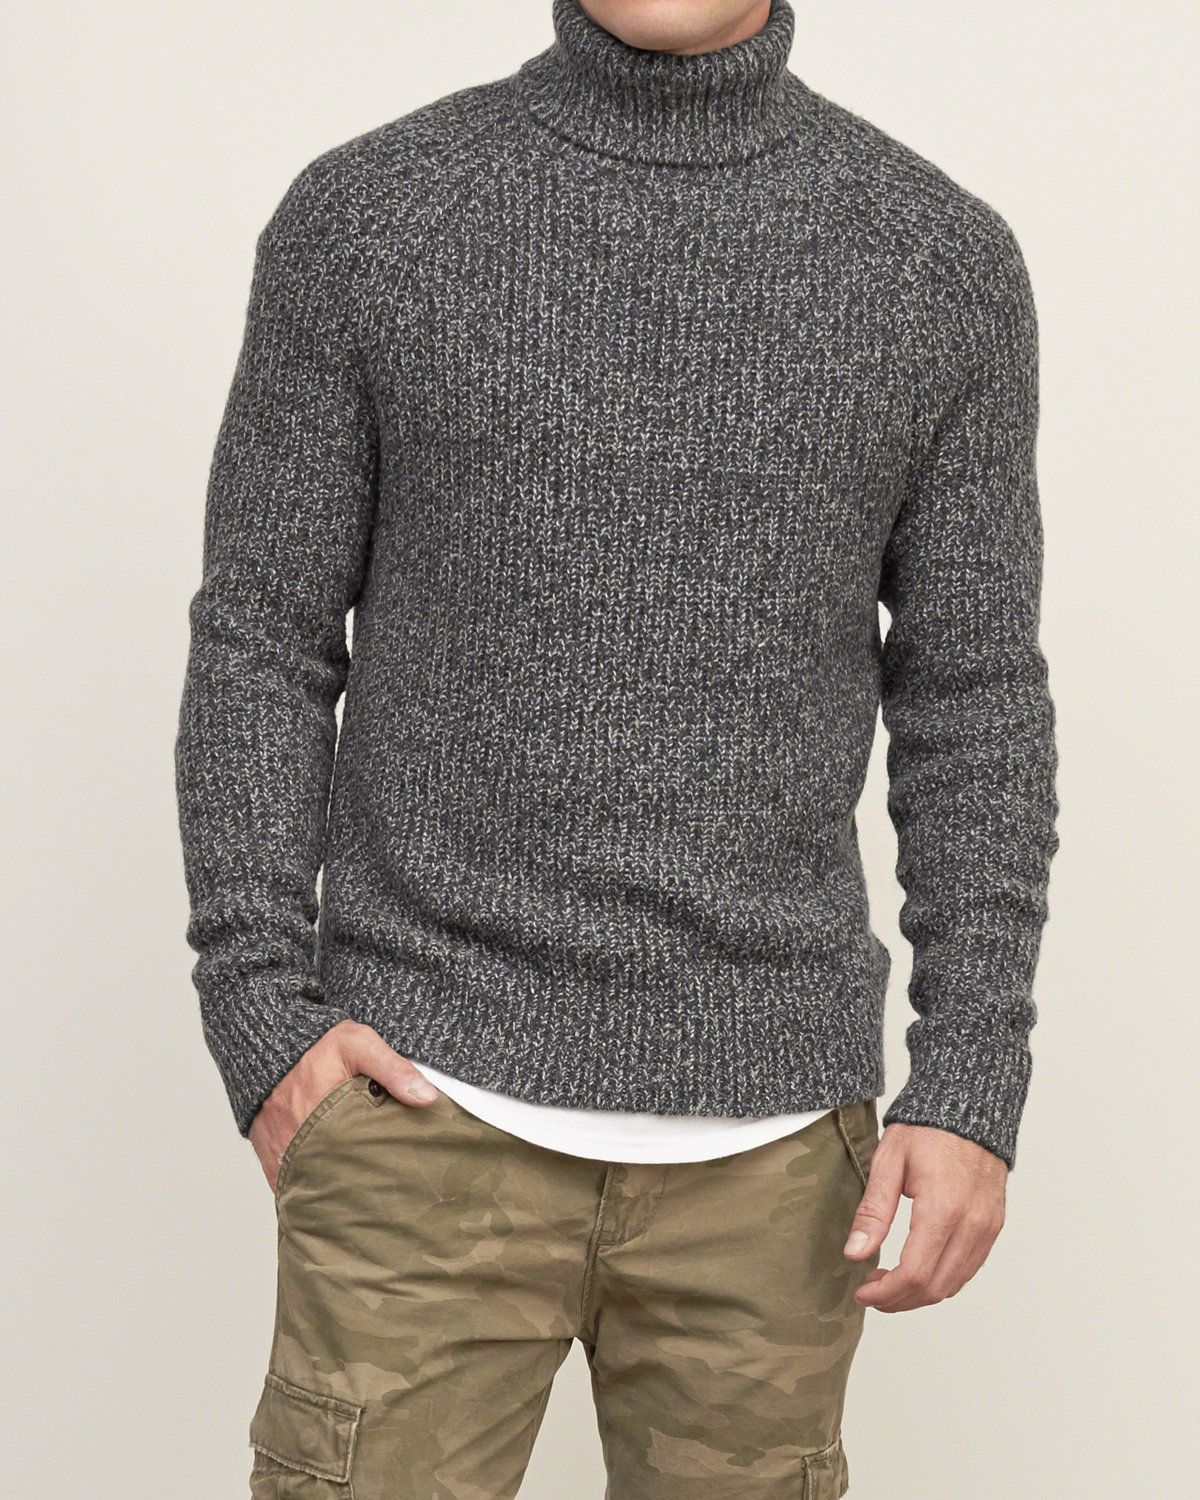 Mens Sweaters | Clearance | Abercrombie & Fitch